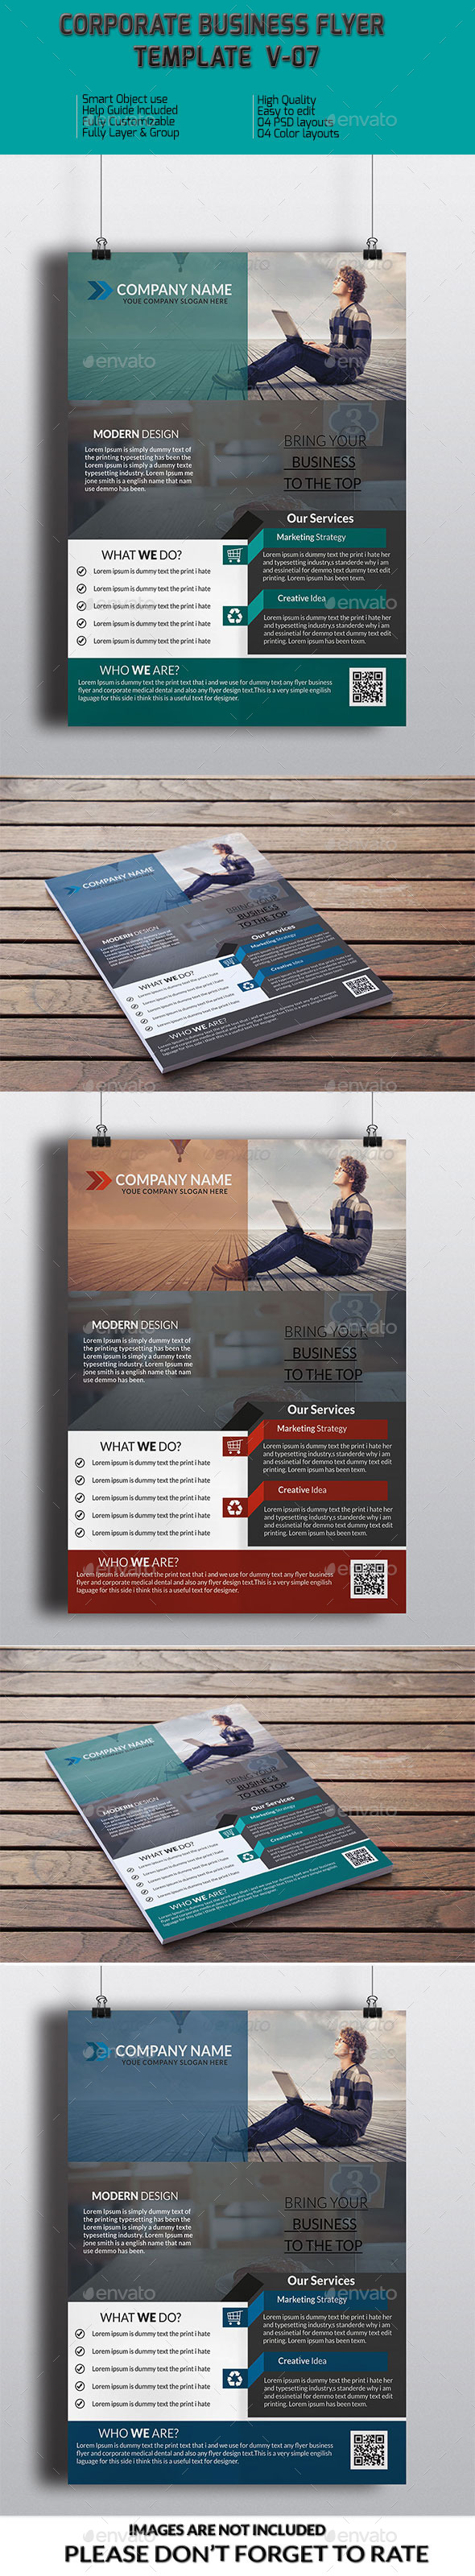 GraphicRiver Corporate Business Flyer Template V-07 8975230